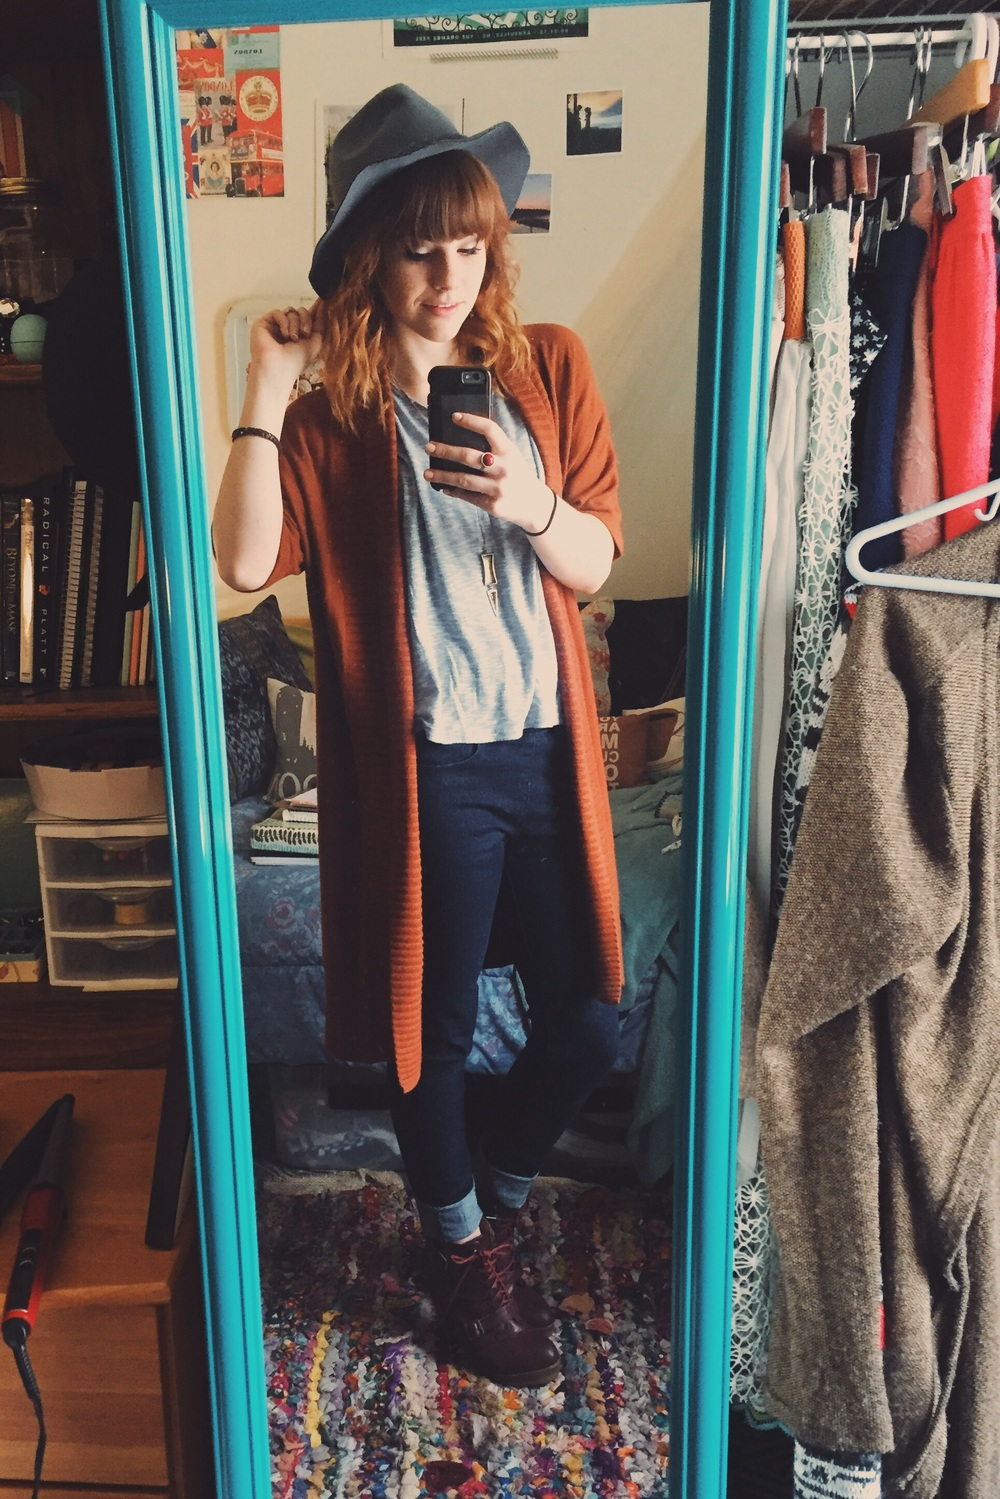 hat: Ross $8 / shirt: hand-me-down / cardigan: Goodwill / necklace: $5 / jeans: Rue 21 $3 / boots: Goodwill $10